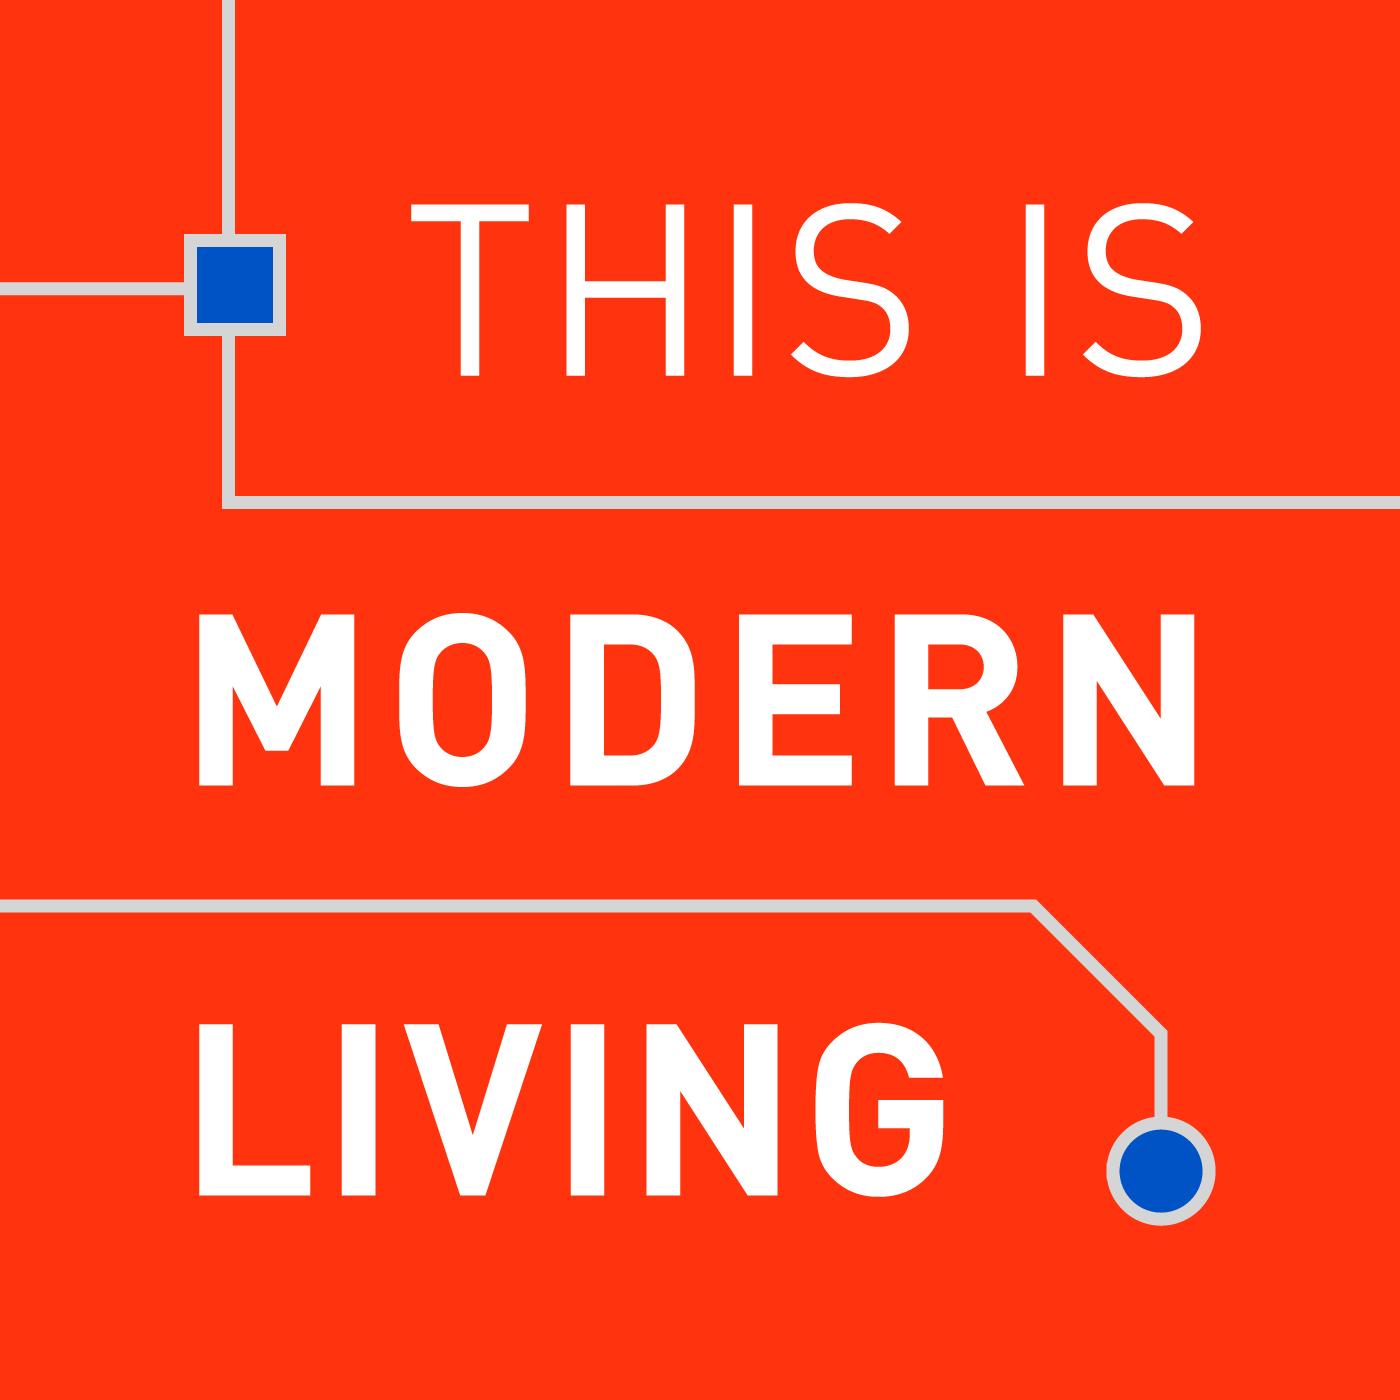 This is Modern Living